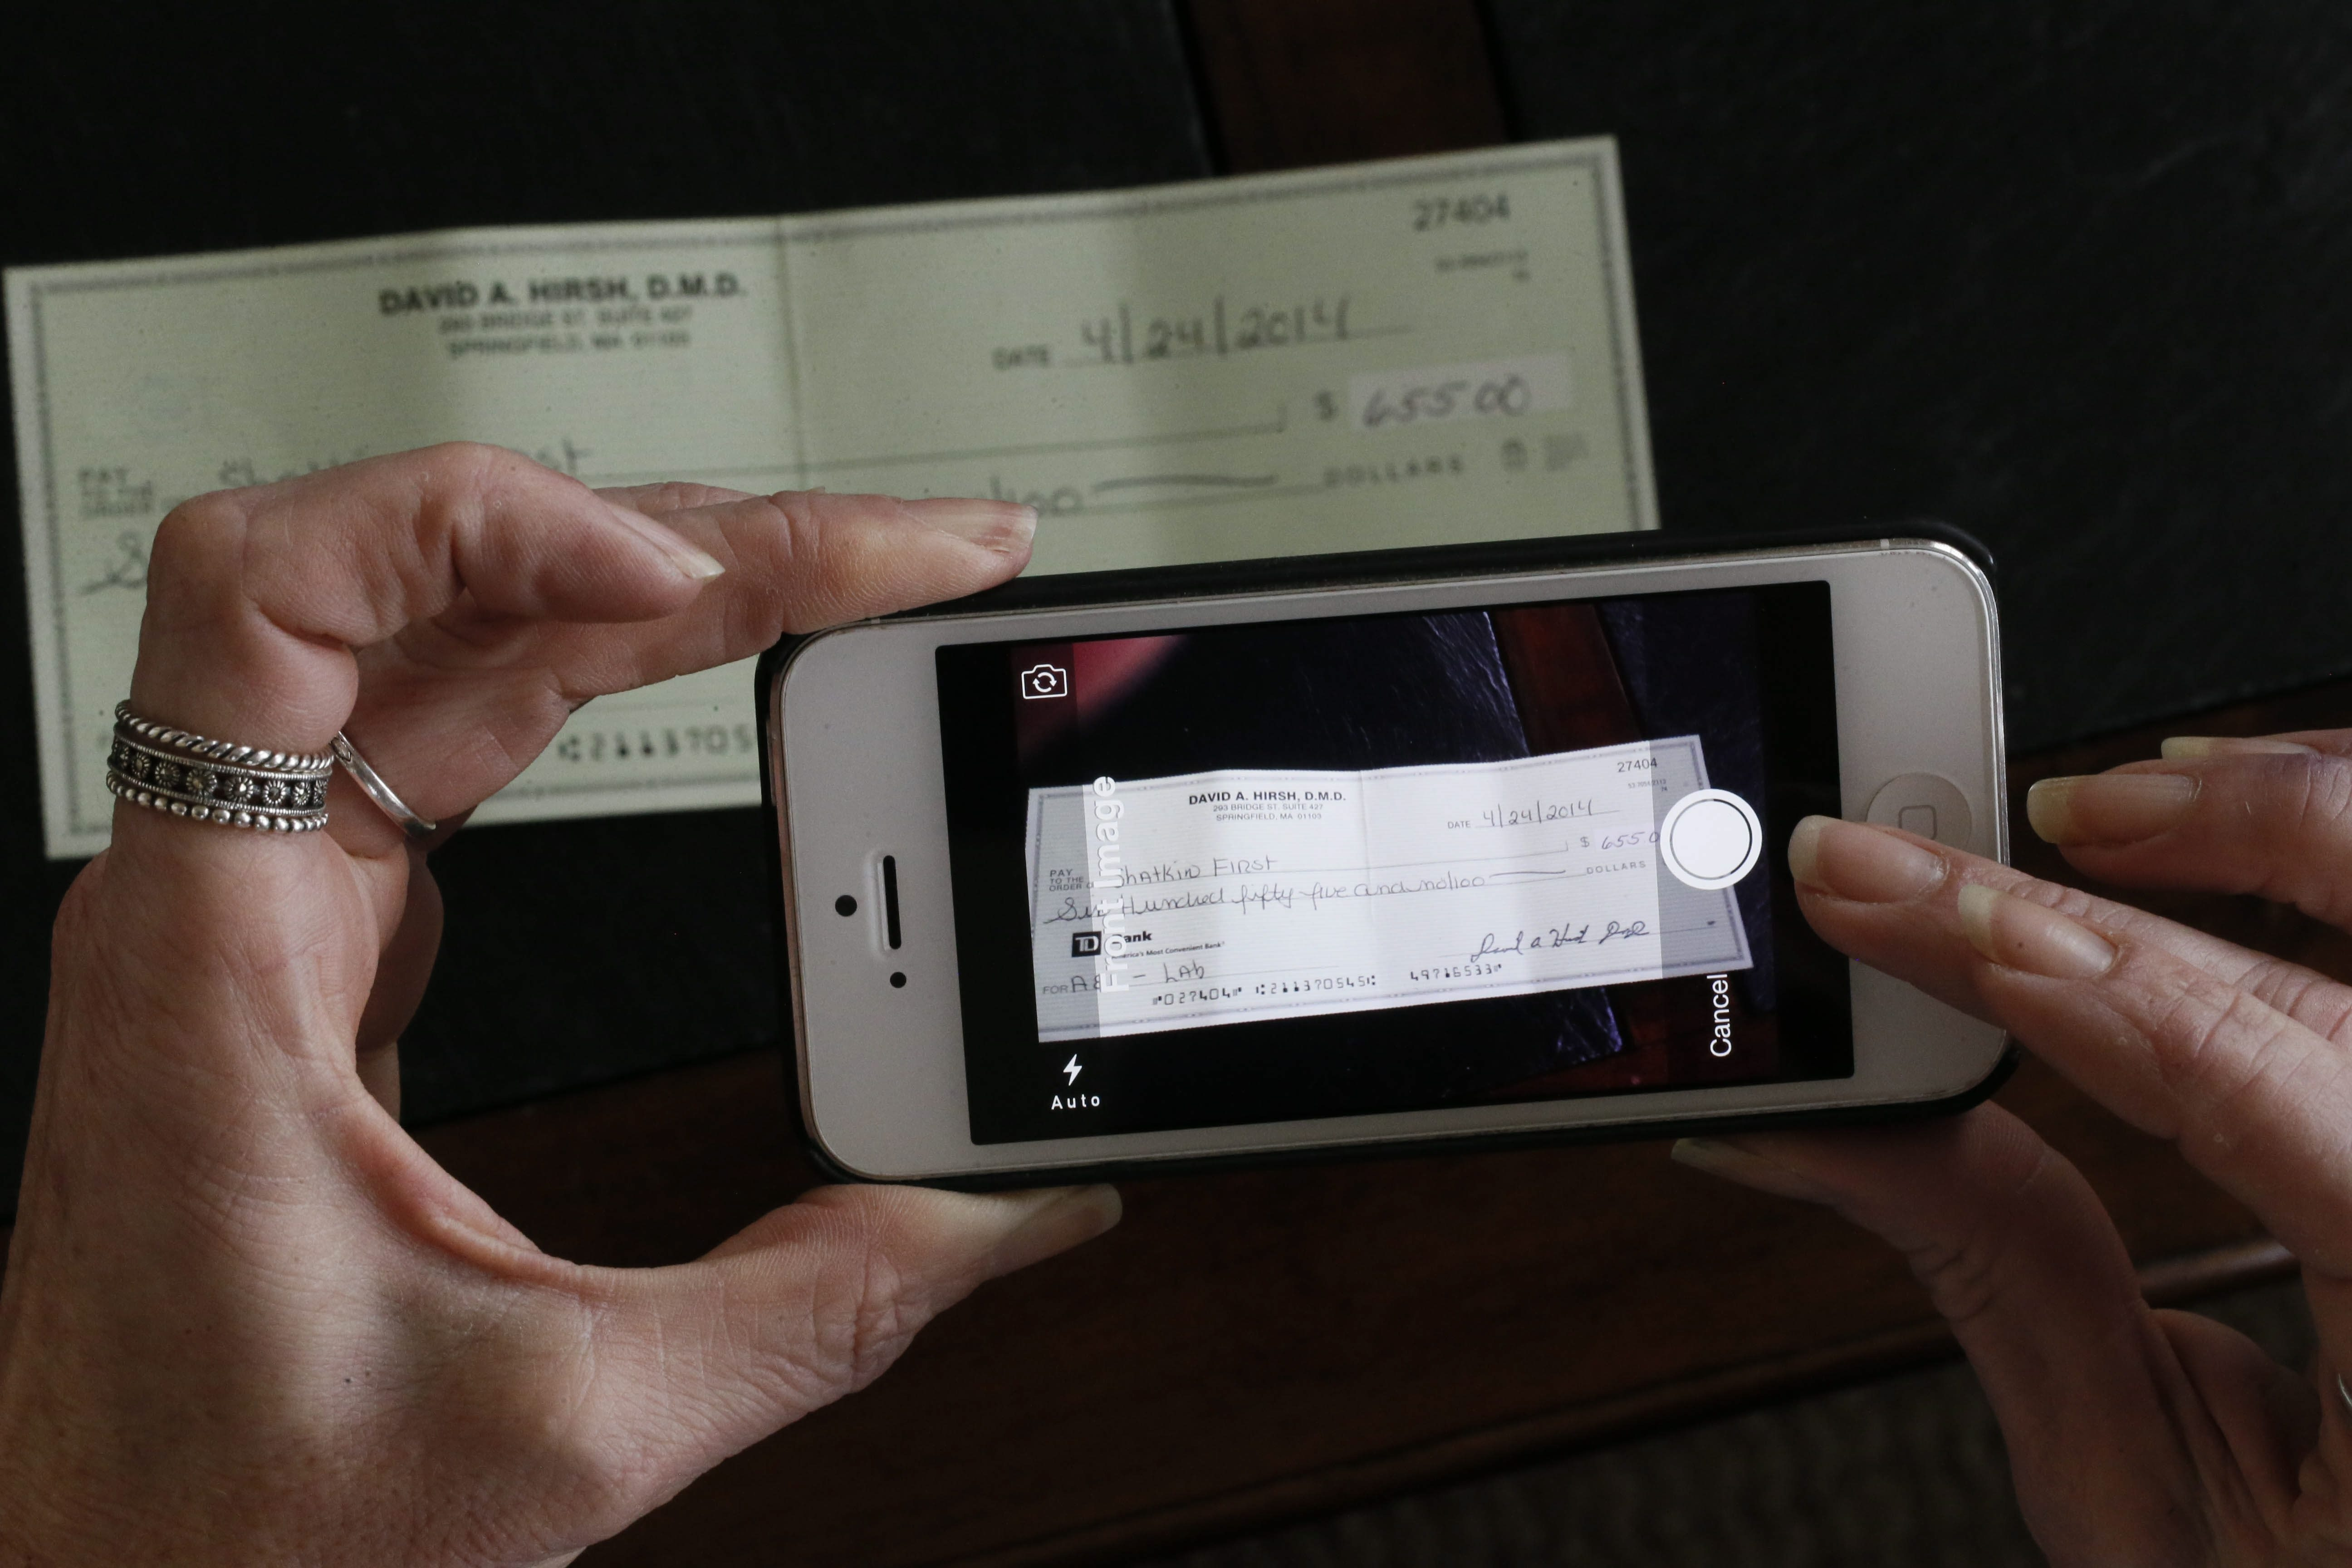 About 15 percent of adults with bank accounts used mobile remote deposit capture by year-end 2014.